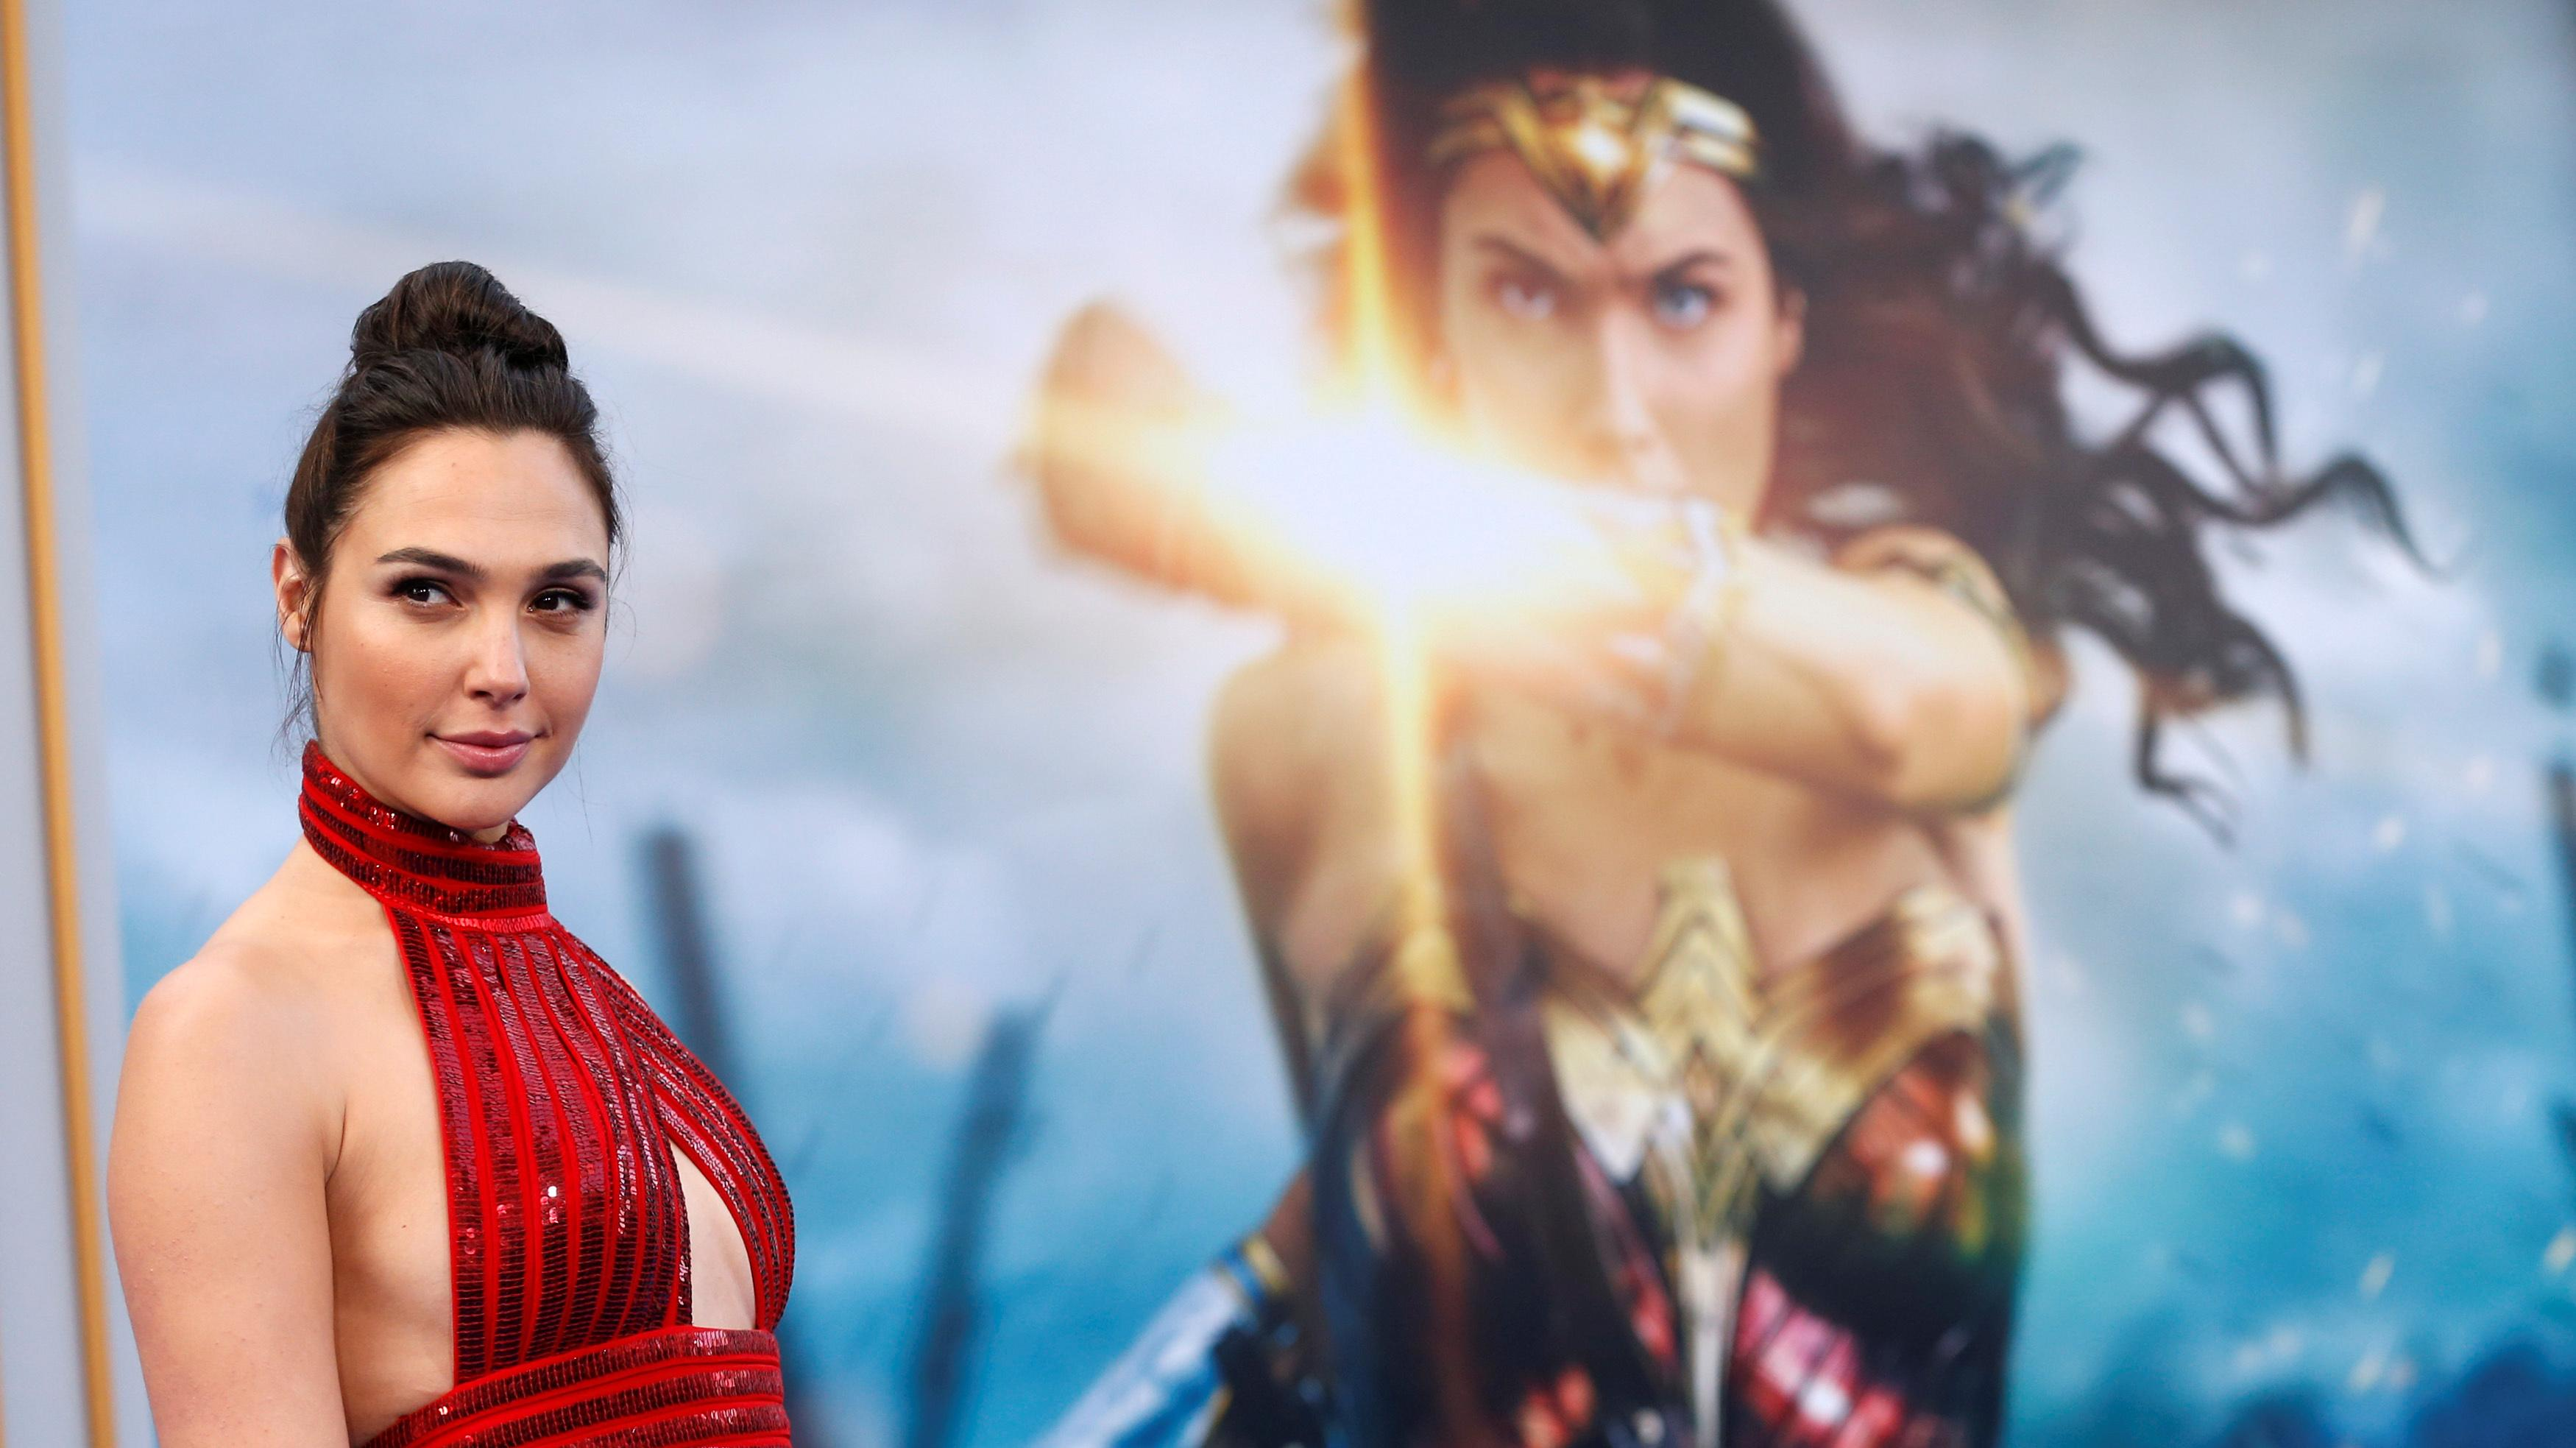 'Wonder Woman' review: Gal Gadot to DC's rescue